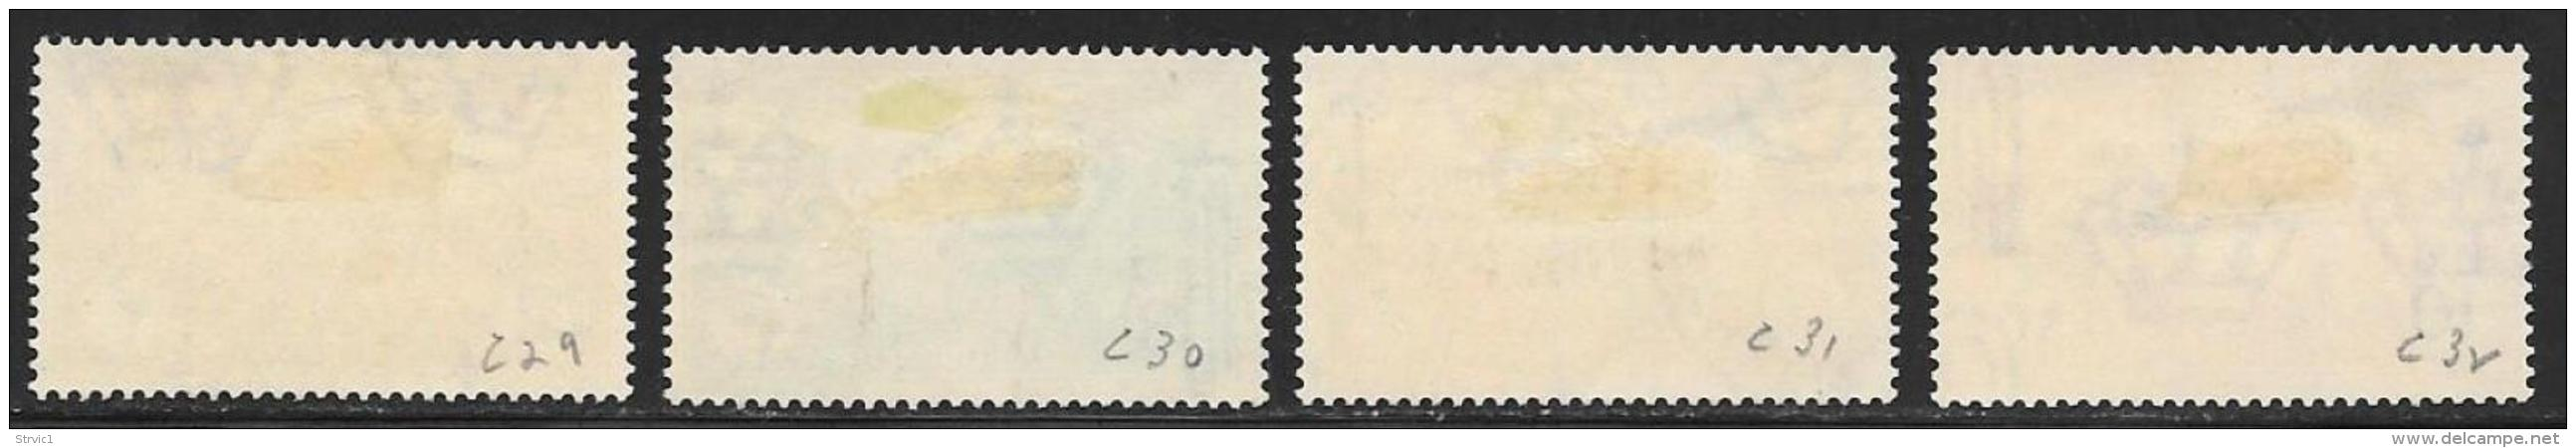 Tripolitania, Scott # C29-32 Used 1931 Stamps Overprinted And Surcharged, 1934, CV$390.00 - Tripolitania